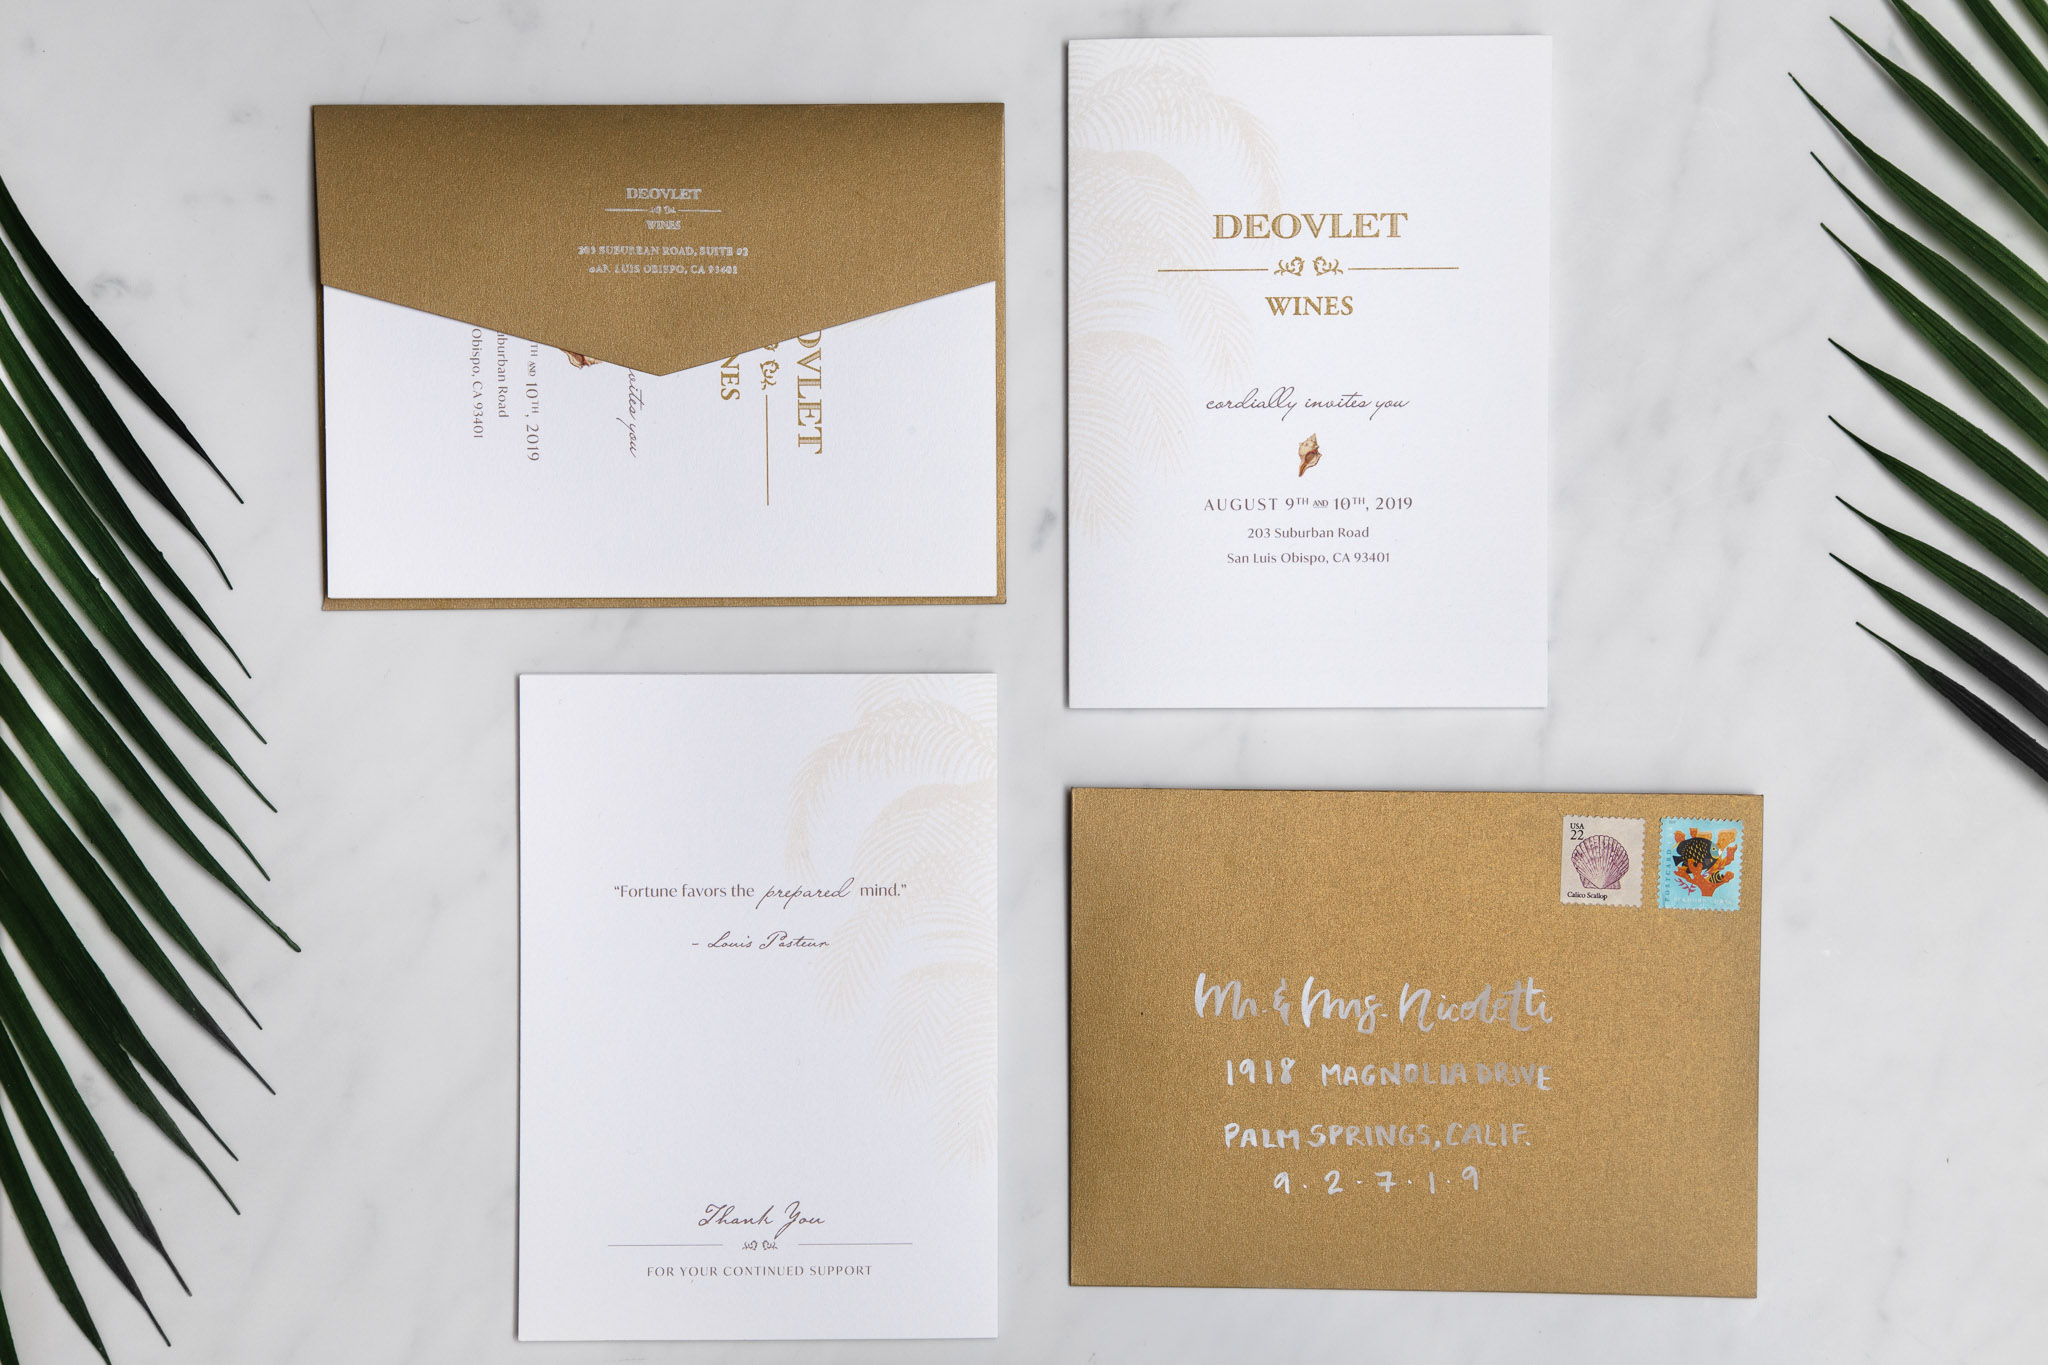 Custom Invitation Design and Event Stationery Suite for Central Coast winery Deovlet Wines